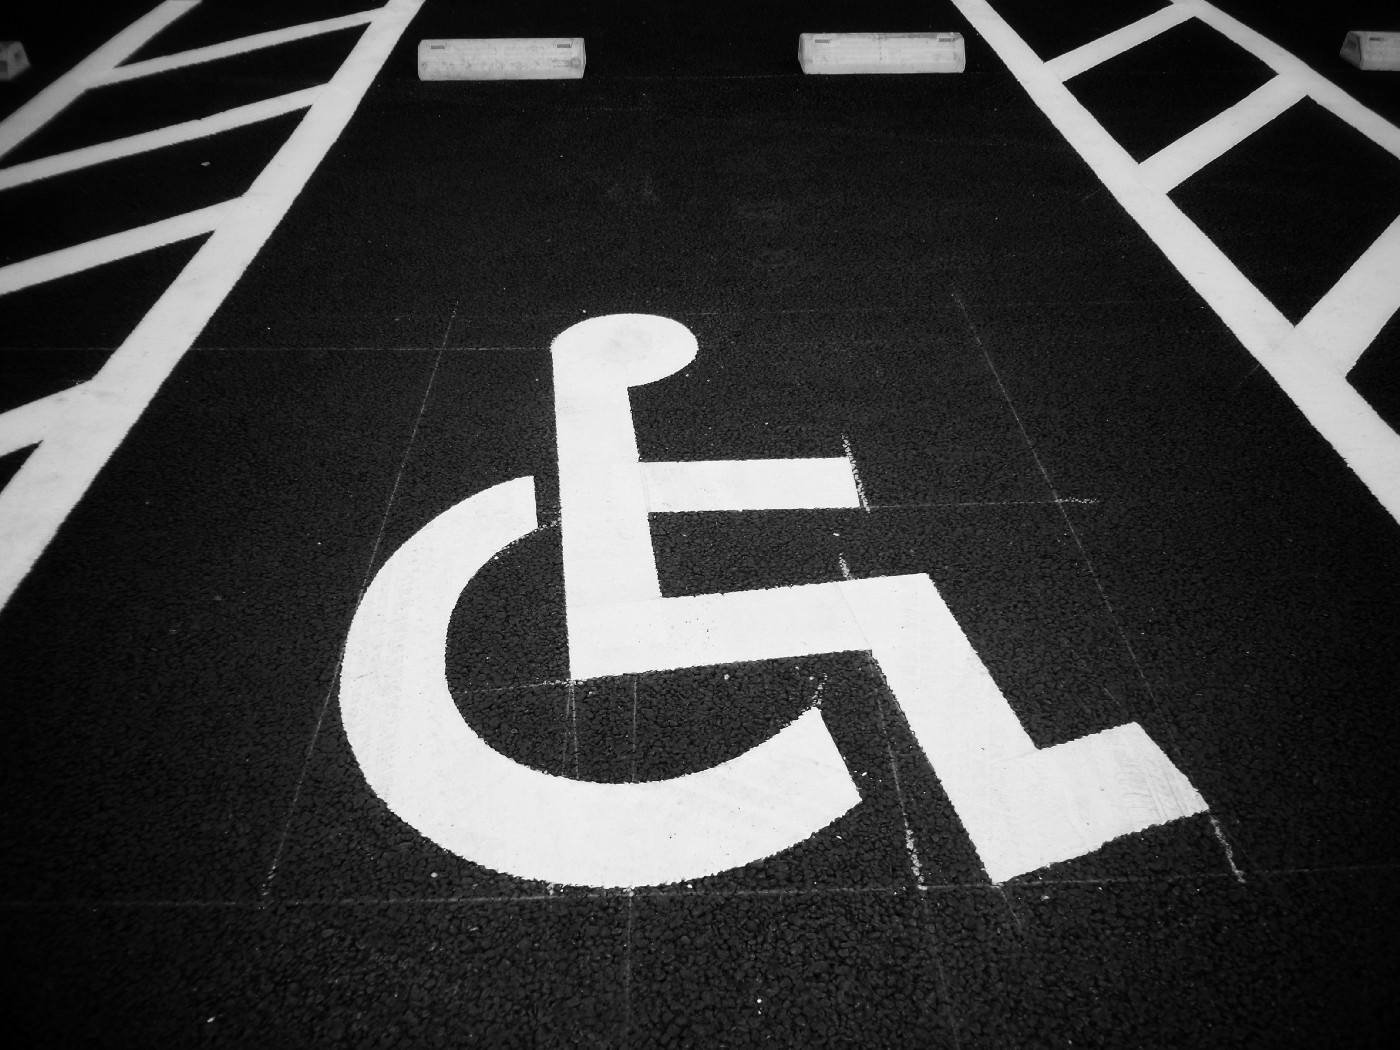 Taking inspiration from struggles with disabiliy